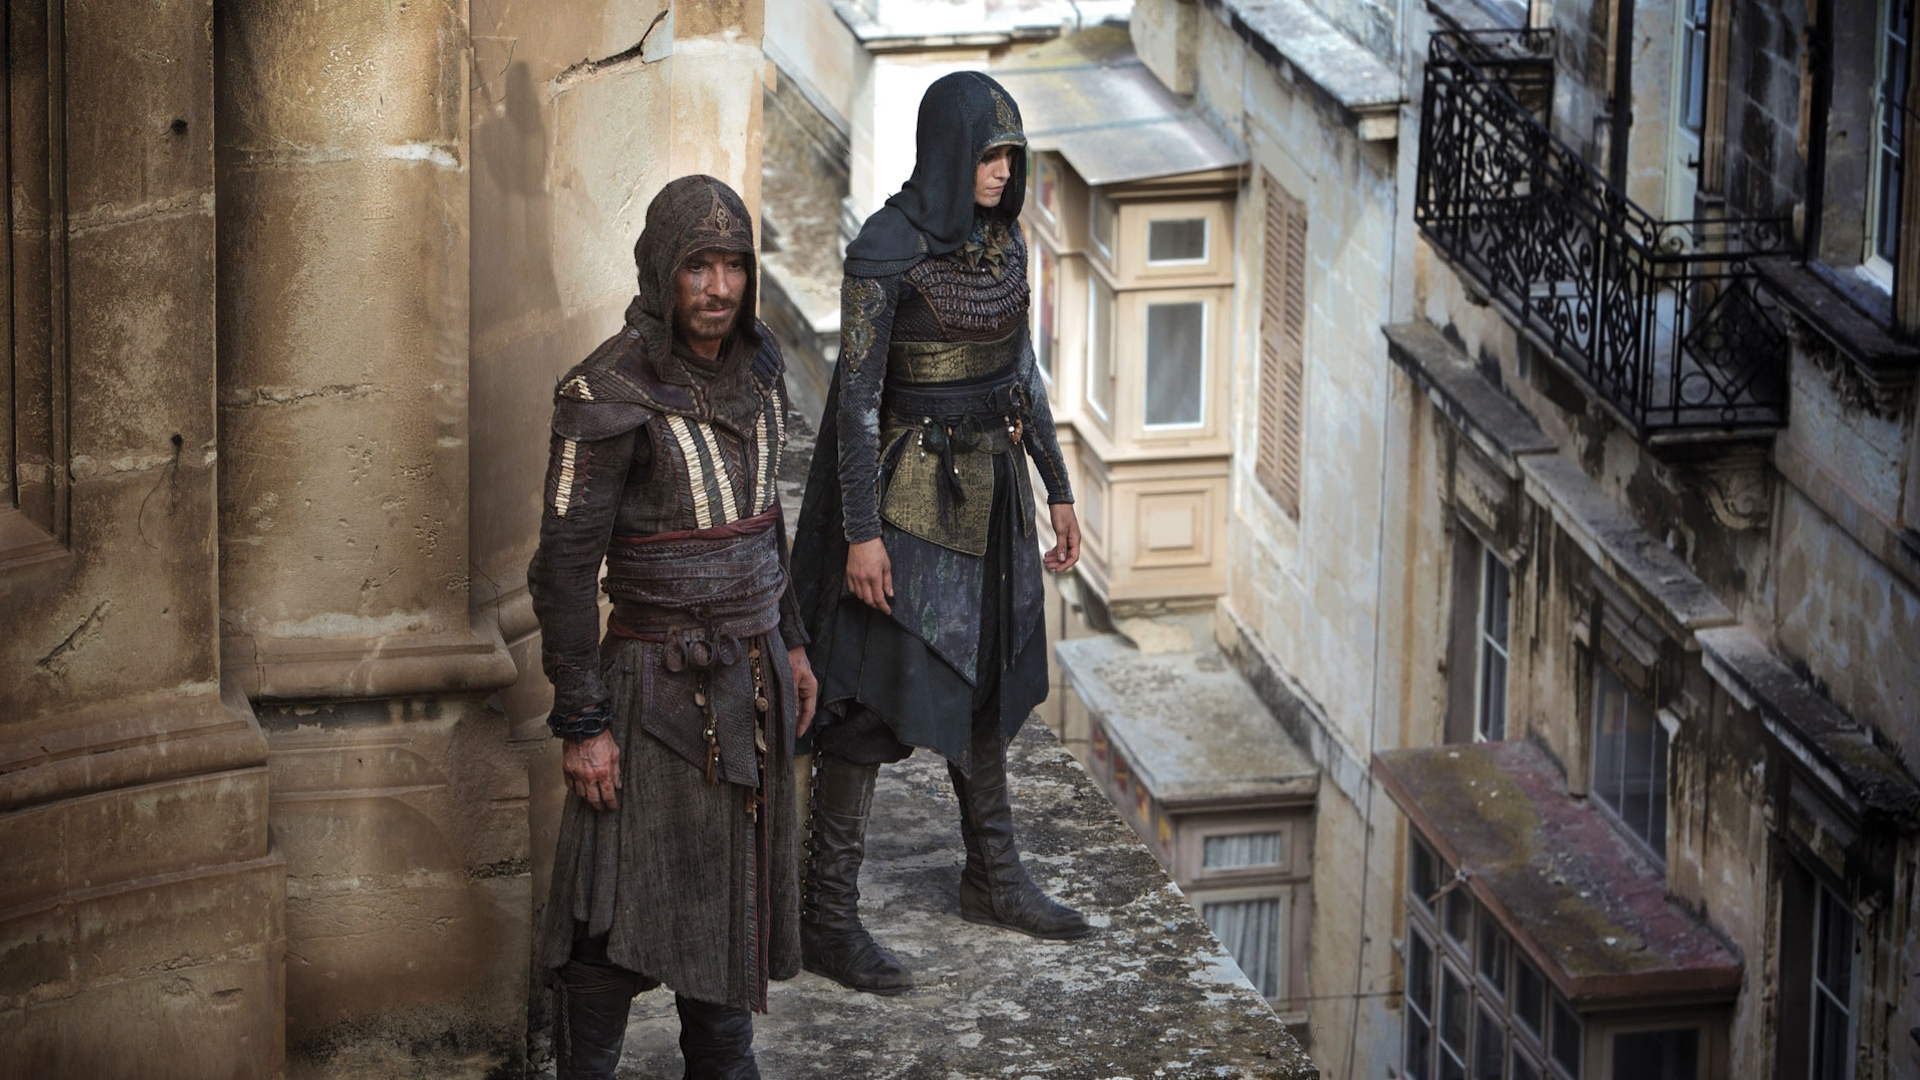 Movie Review Roundup Assassin's Creed is bad, folks